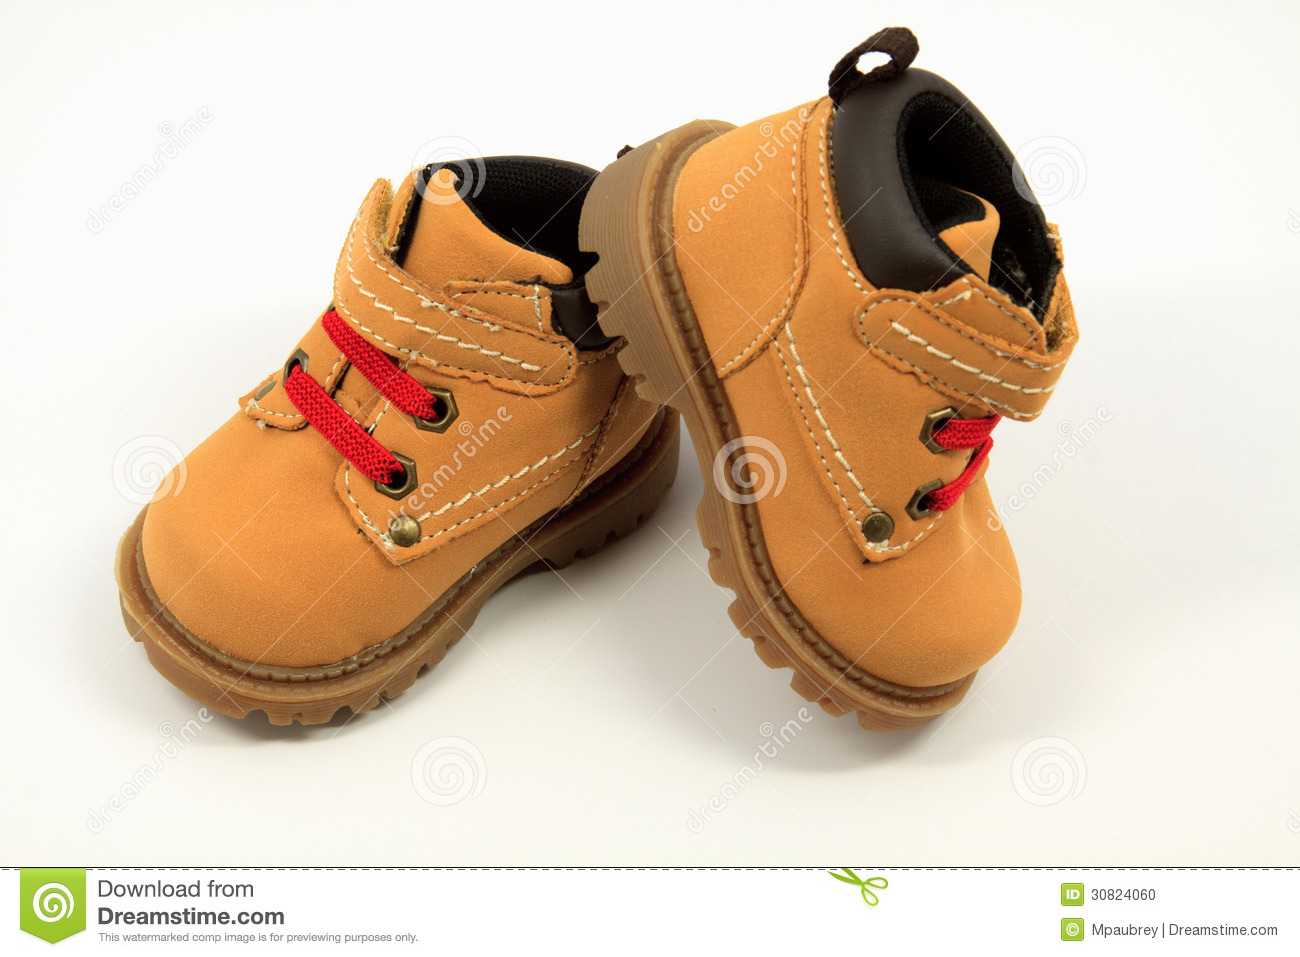 Baby Shoes stock photo. Image of accessories, boys, kids ...